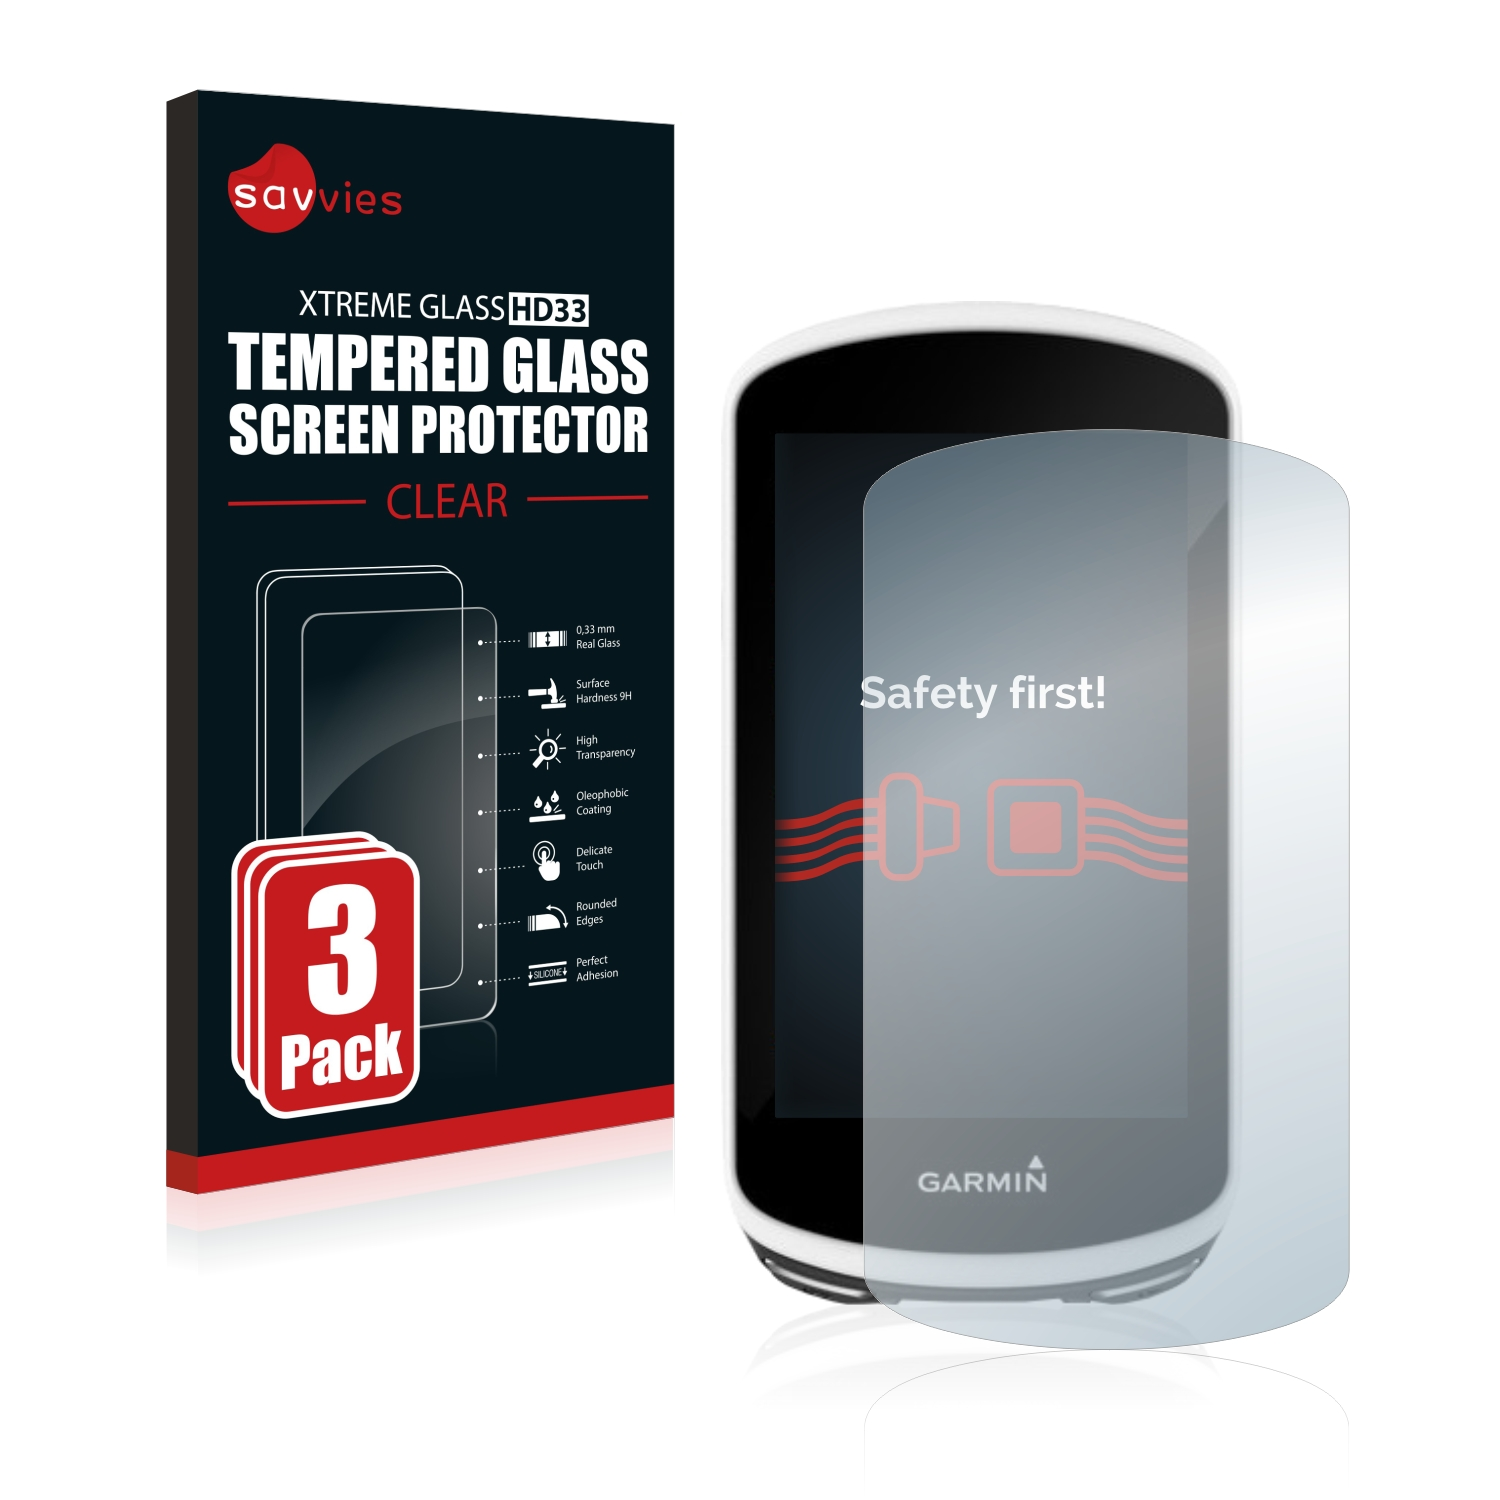 6 Pack Savvies Screen Protector compatible with Garmin Approach G8 HD-Clear Protection Film